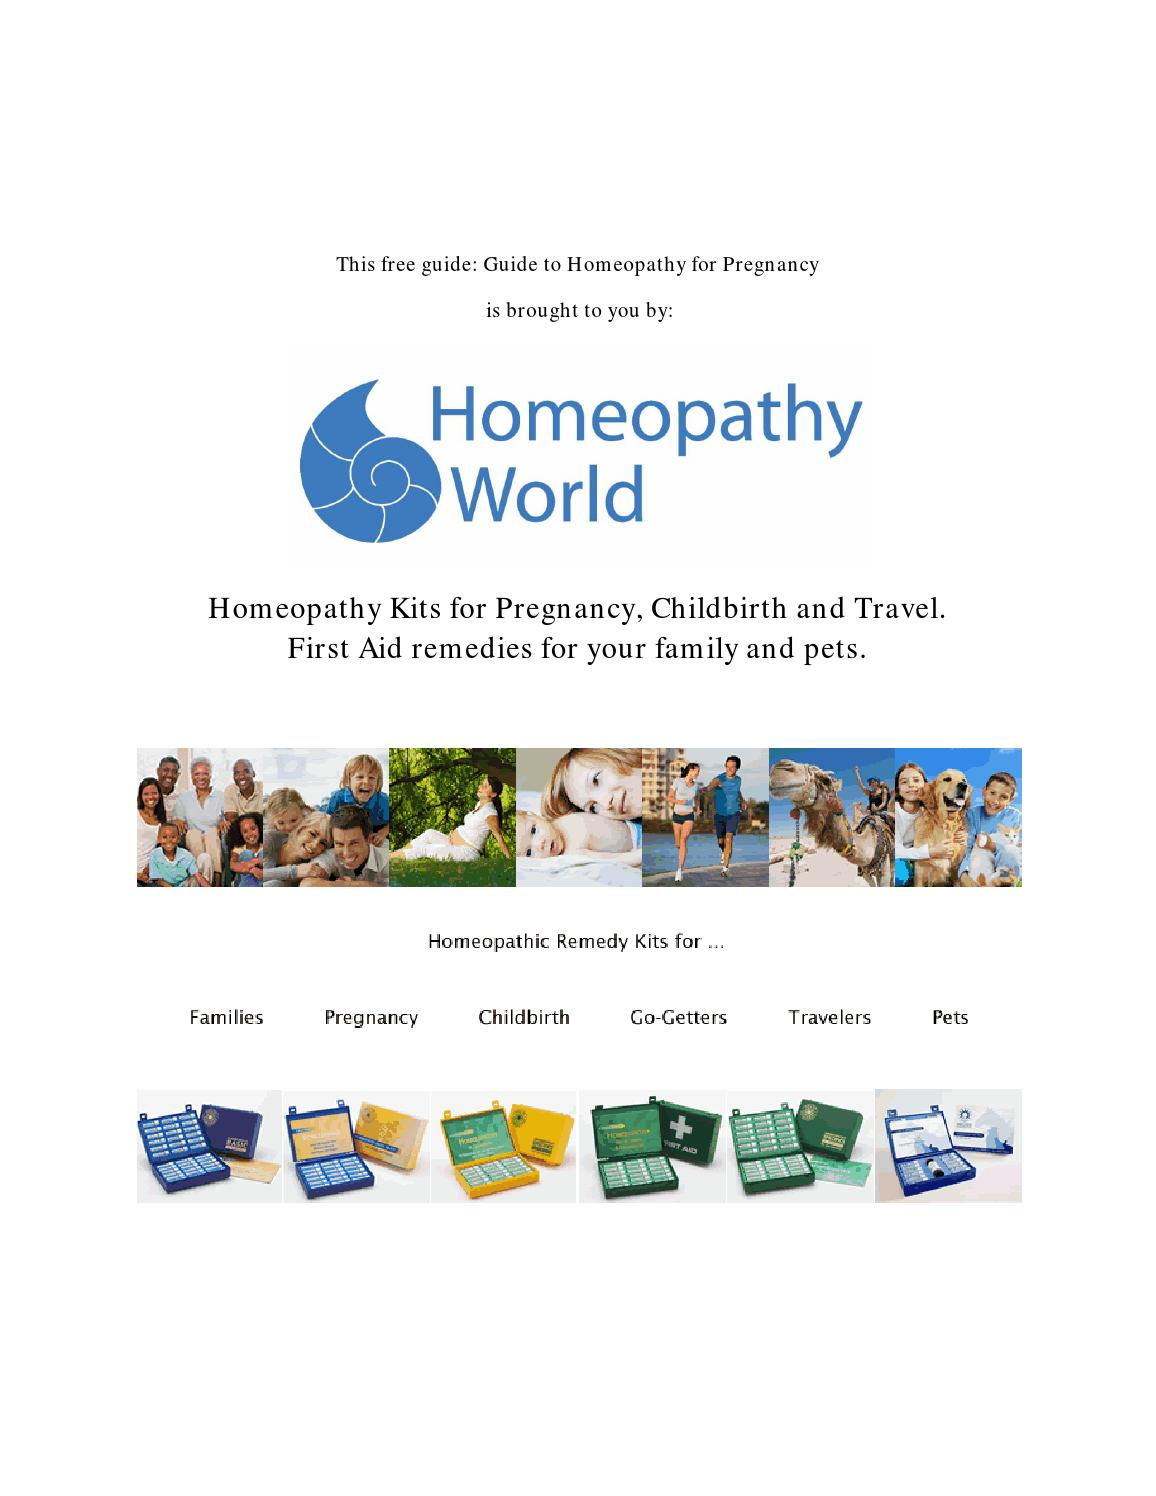 Your guide to homeopathy for pregnancy by mary aspinwall issuu fandeluxe Images